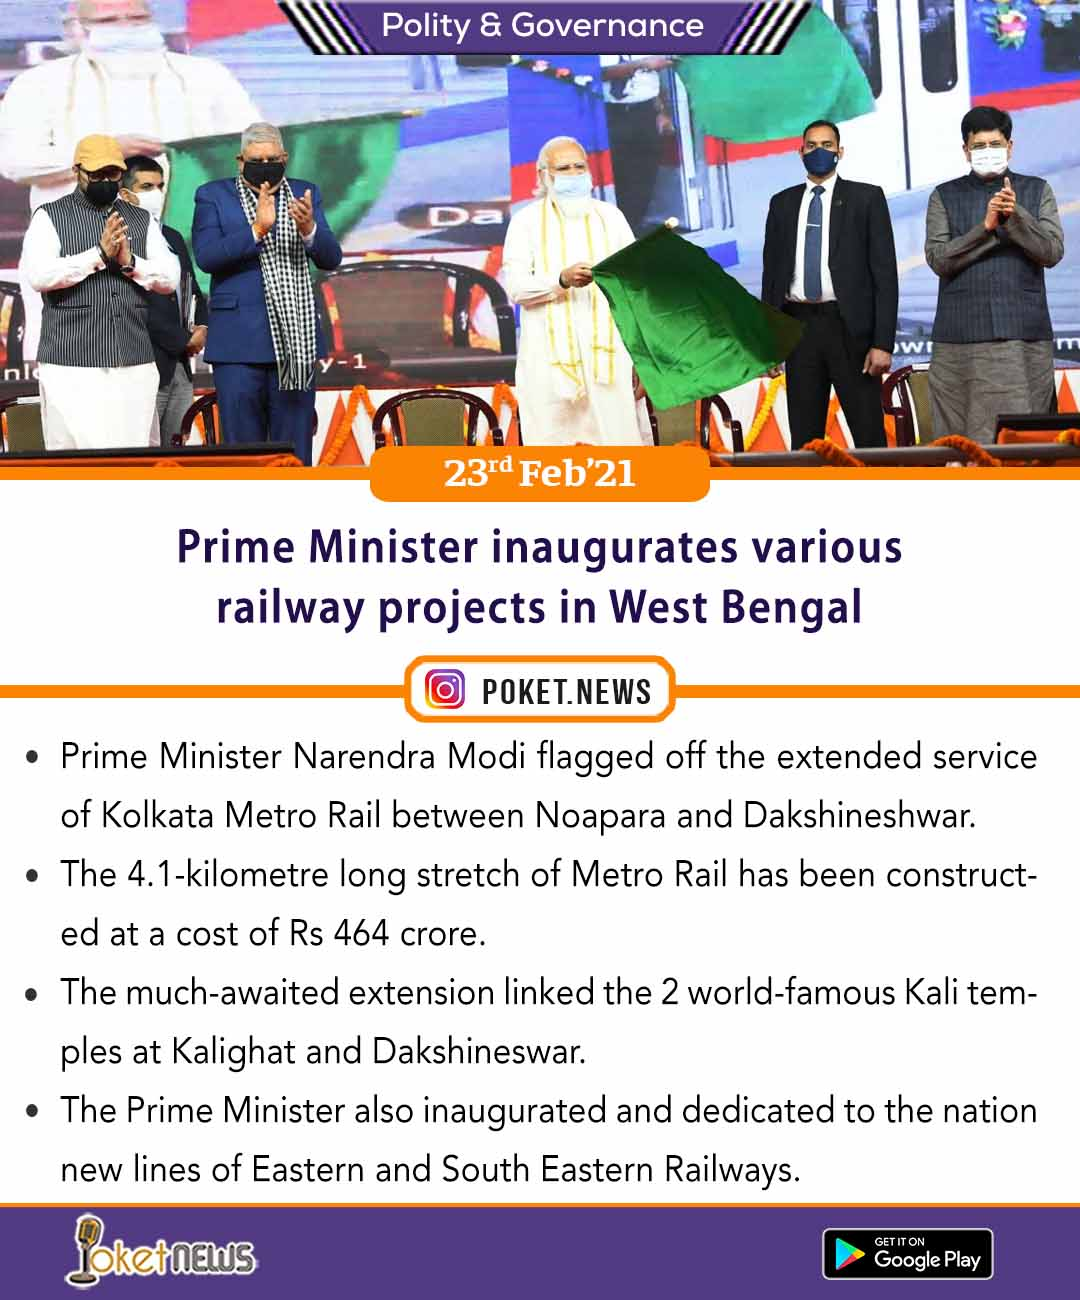 Prime Minister inaugurates various railway projects in West Bengal